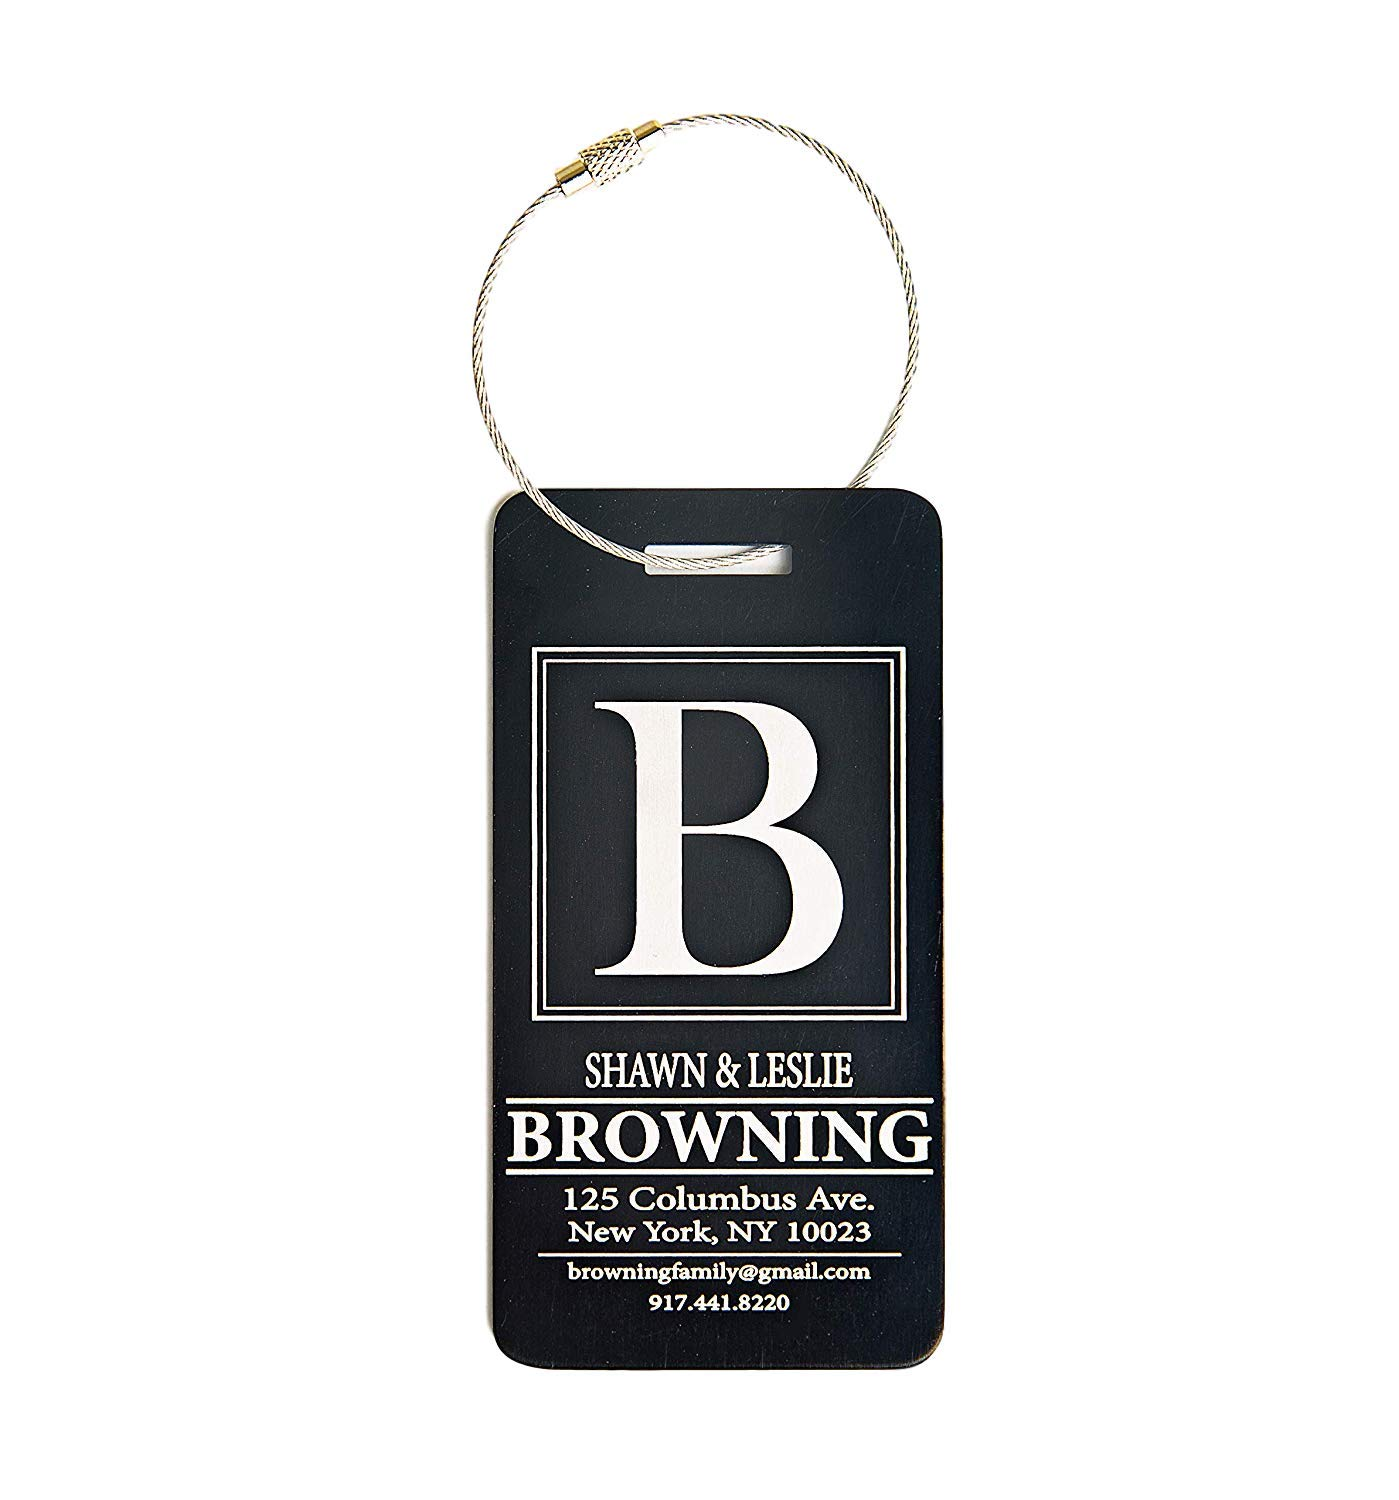 Personalized Luggage Tags Gifts with Engraved Design (Browning Design) - Elegant and Durable Travel Suitcase Name Tags, Gift for Travelers Men and Women (4 Luggage Tags, Black)